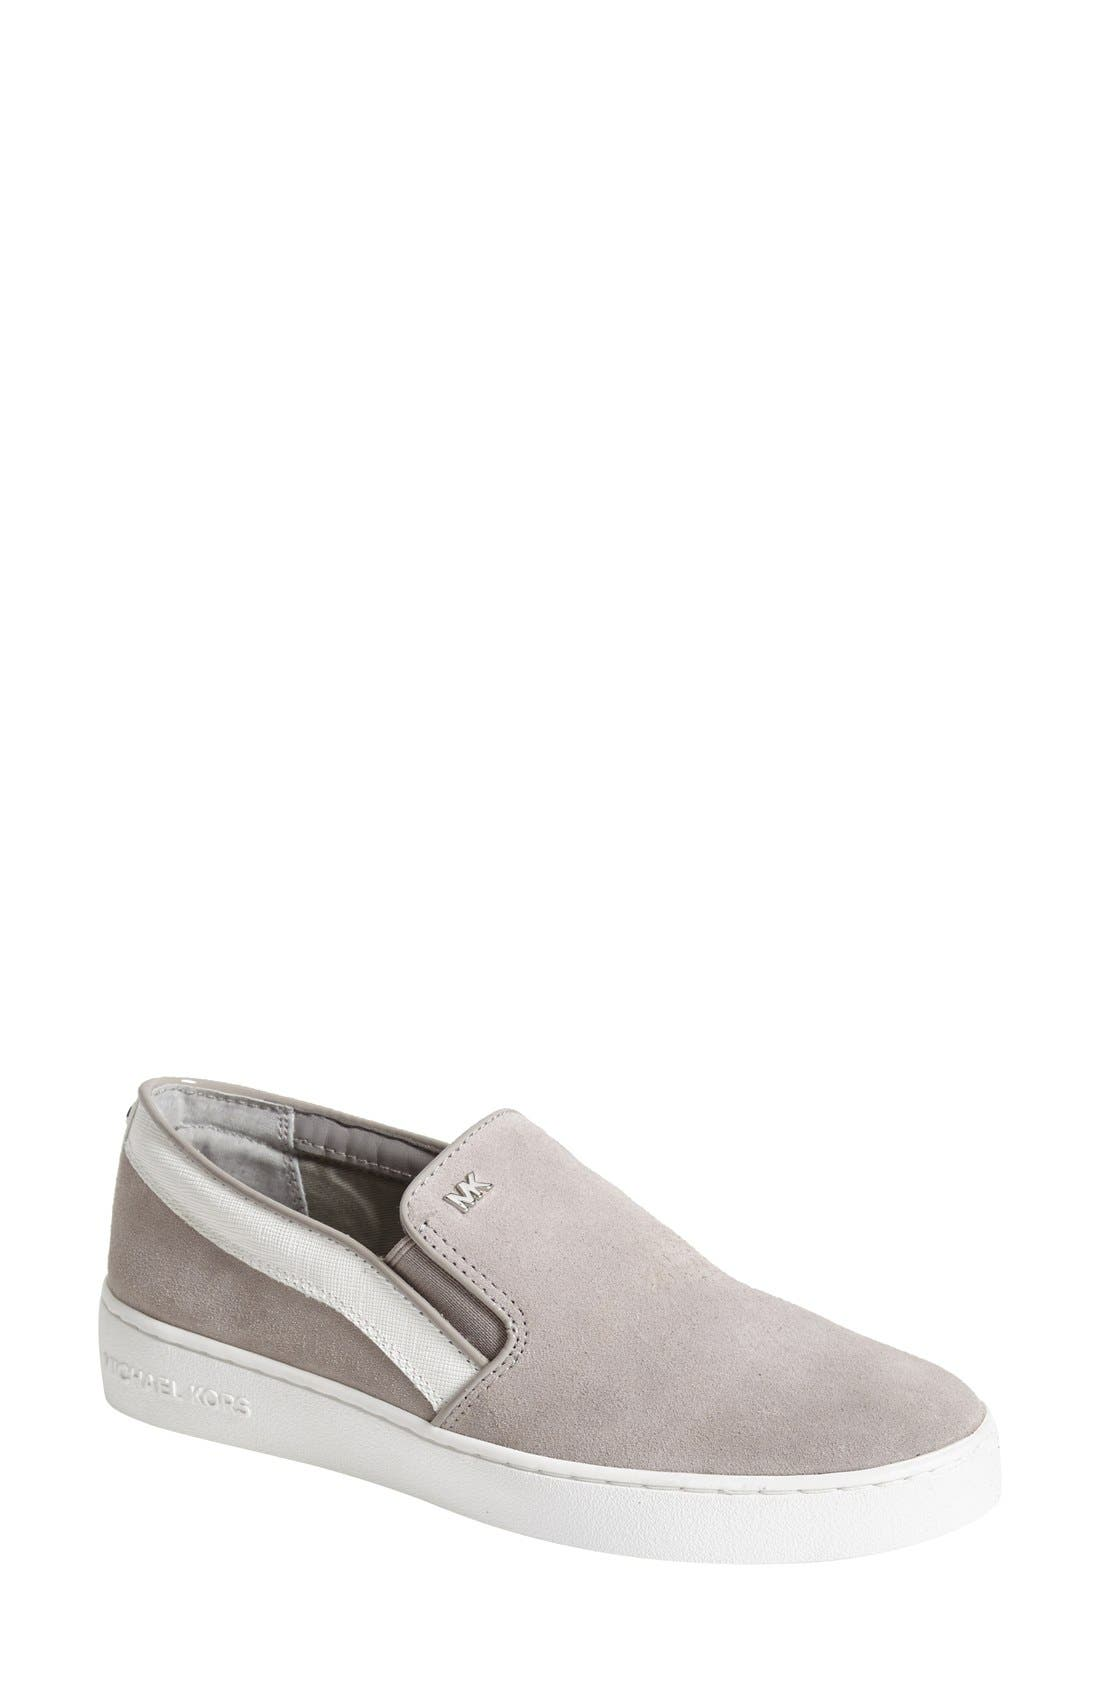 Keaton Slip-On Sneaker,                             Main thumbnail 27, color,